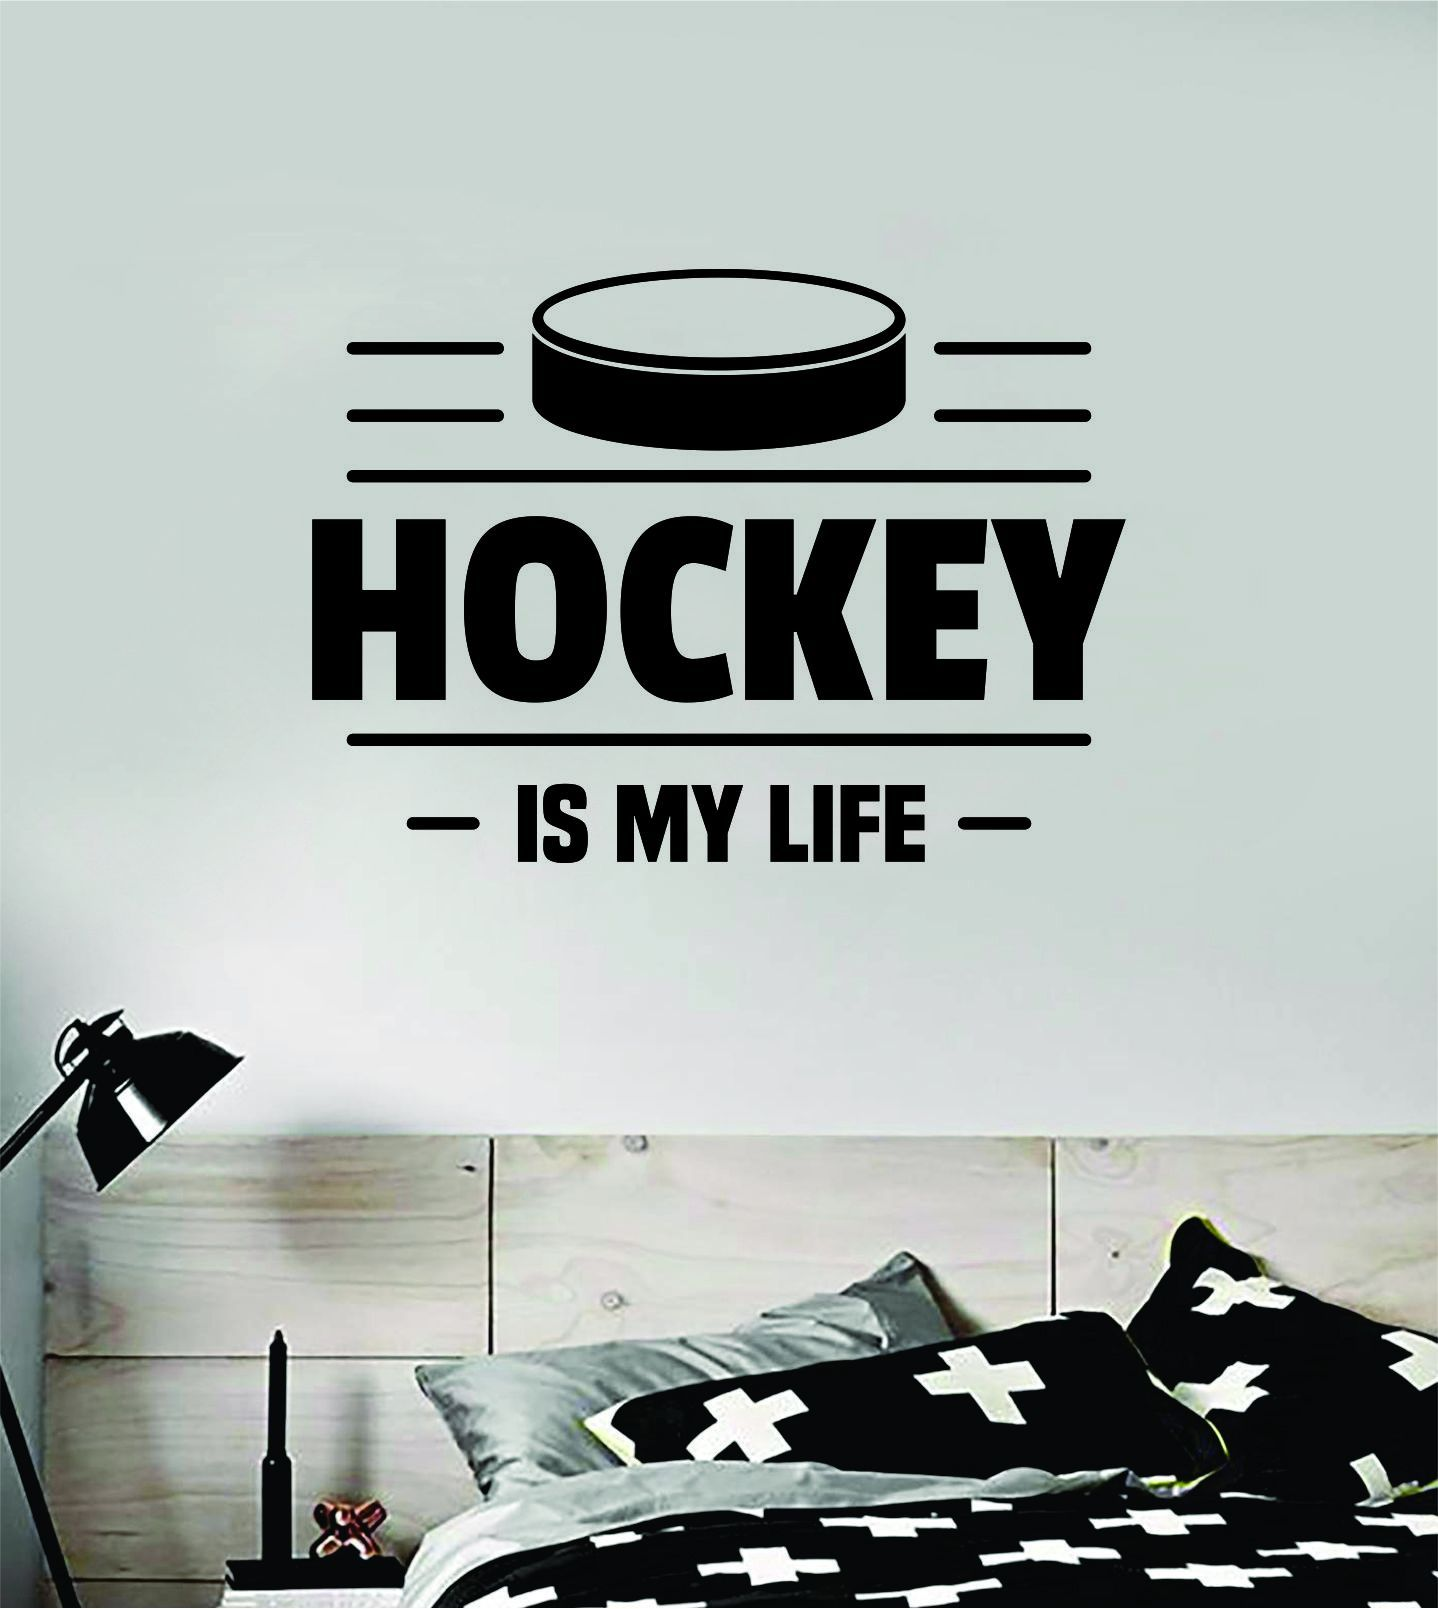 Hockey Is My Life Wall Decal Quote Home Room Decor Art Vinyl Sticker Bedroom Inspirational Sports Teen Winter Ice Goalie Kids - teal